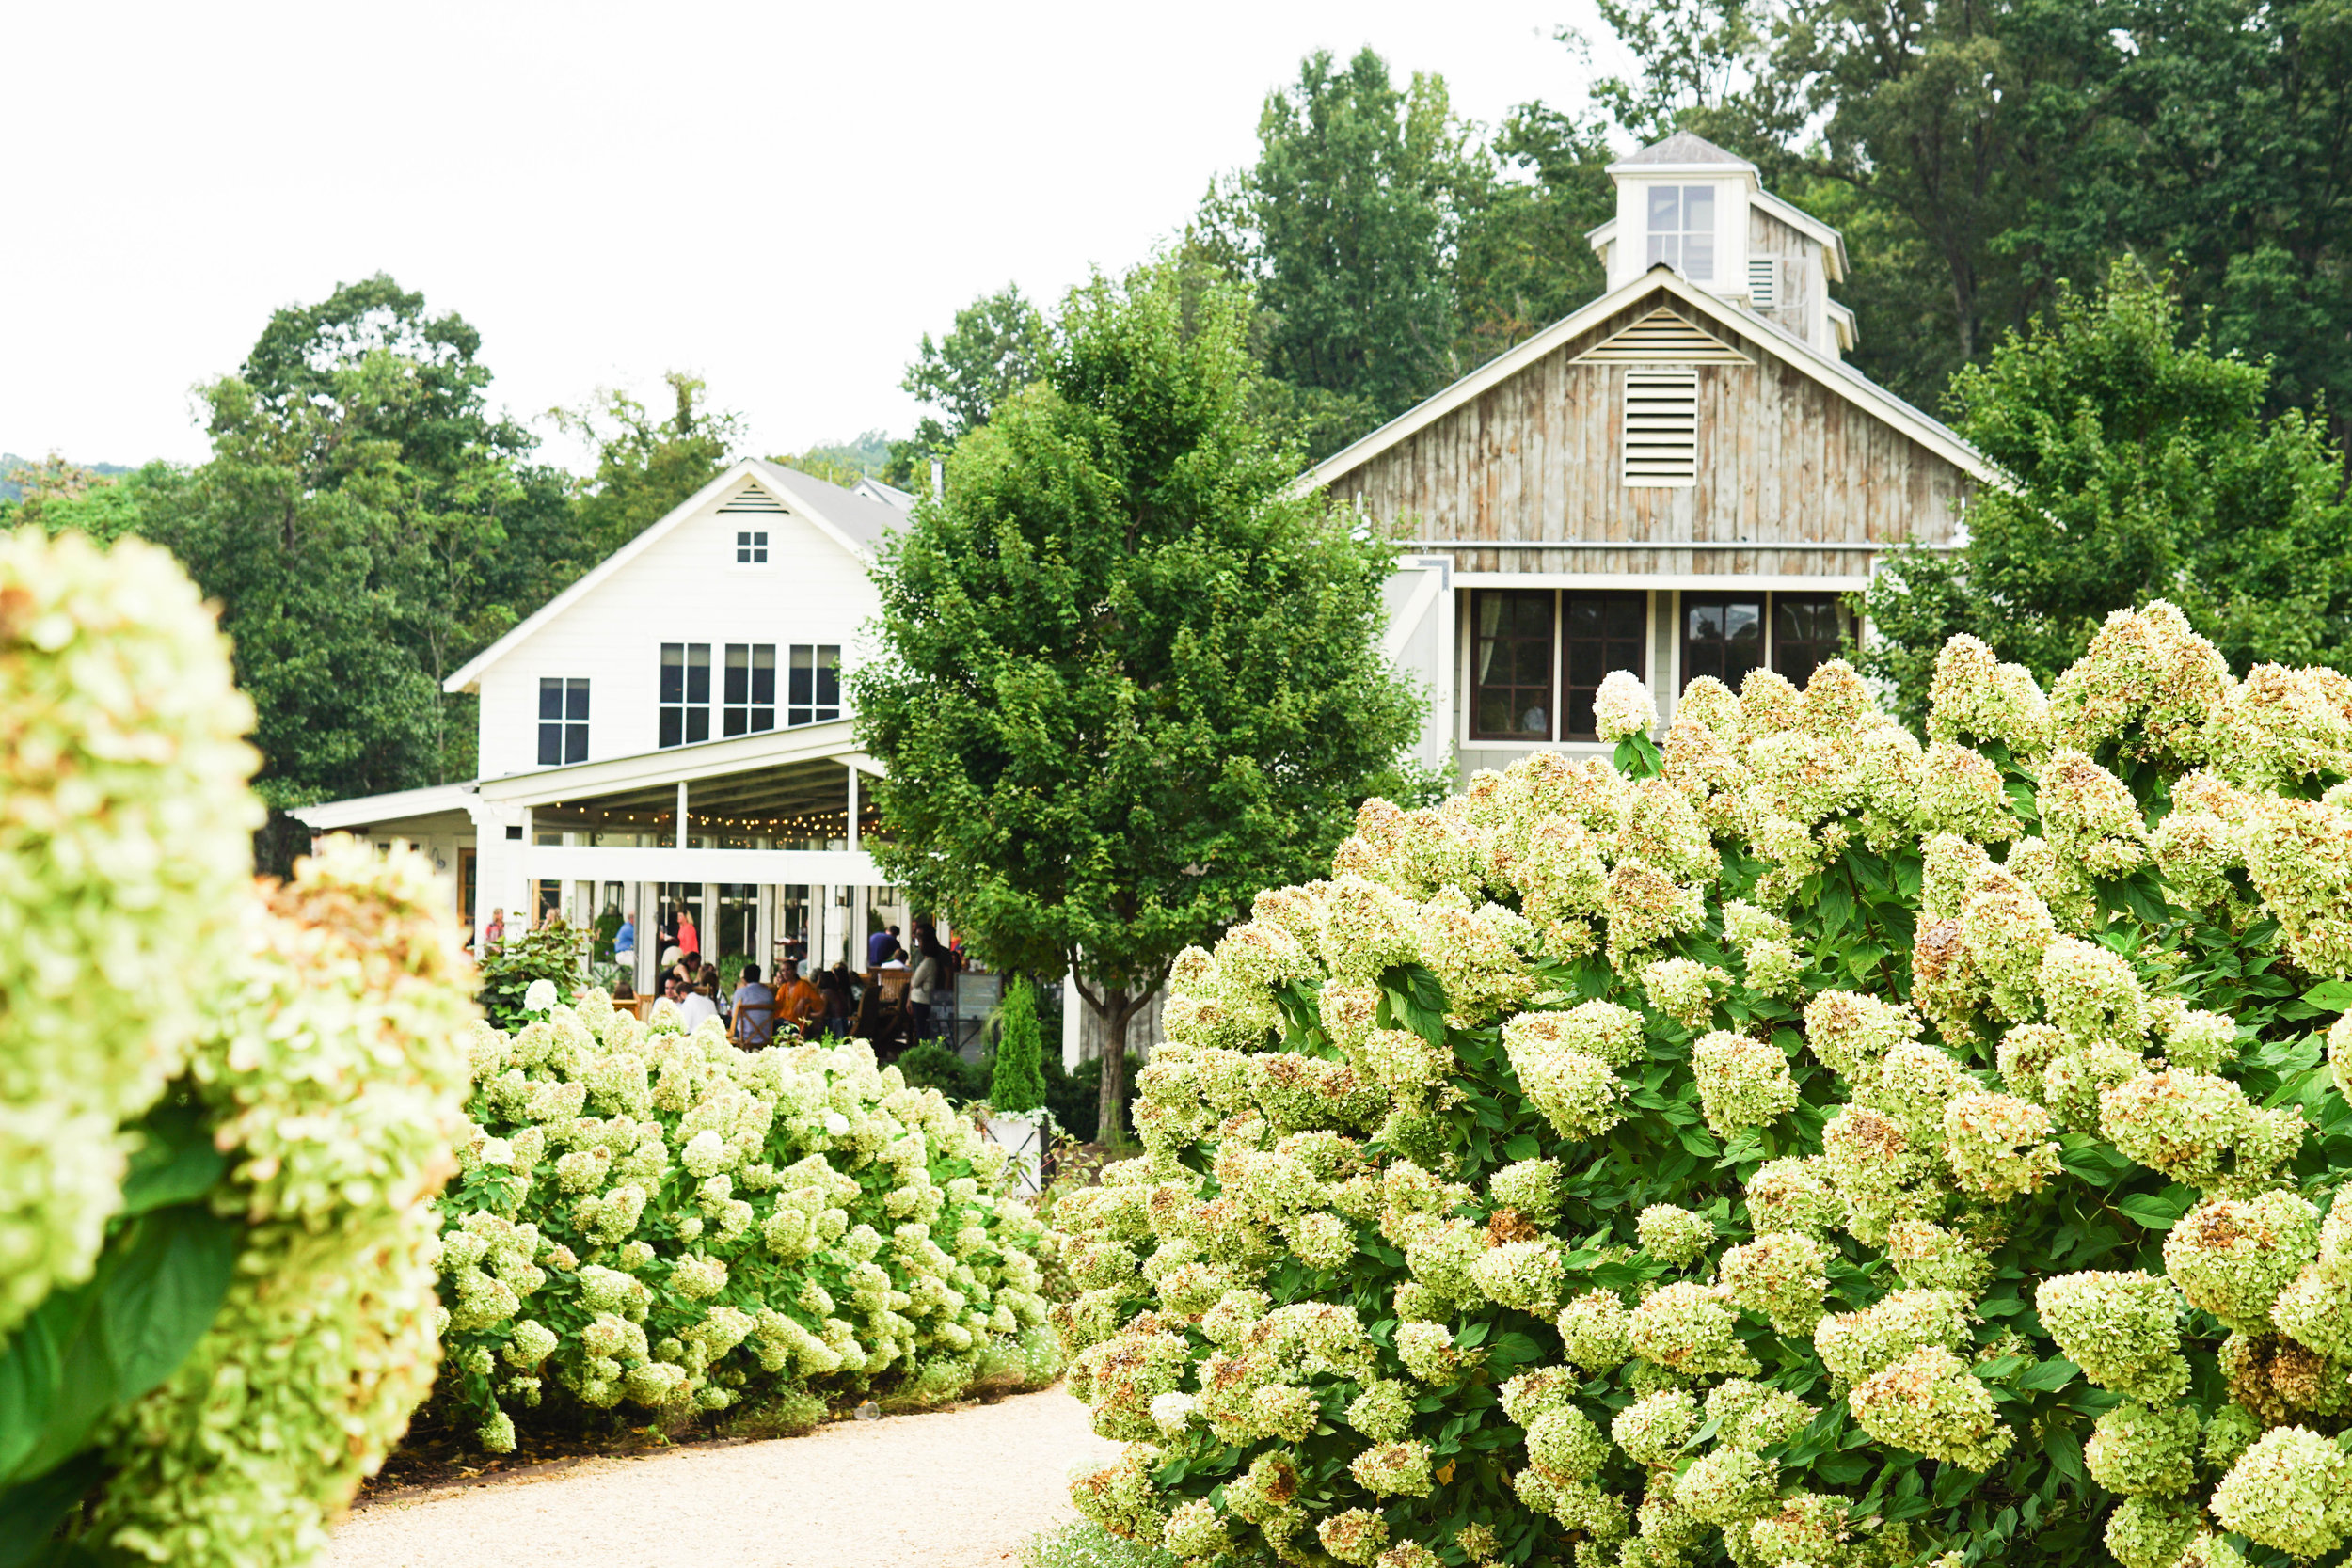 This is always one of the highlights of our trip so I had to put it at the top of the list of things to do. Virginia wine country has so much to offer to the wine lovers, as well as those just along for a fun day. Make a day of winery hoping, sampling the local vino.   My Favorite Wineries:  Pippin Hill  Veritas  King Family  Trump Winery  Early Mountain Vineyards